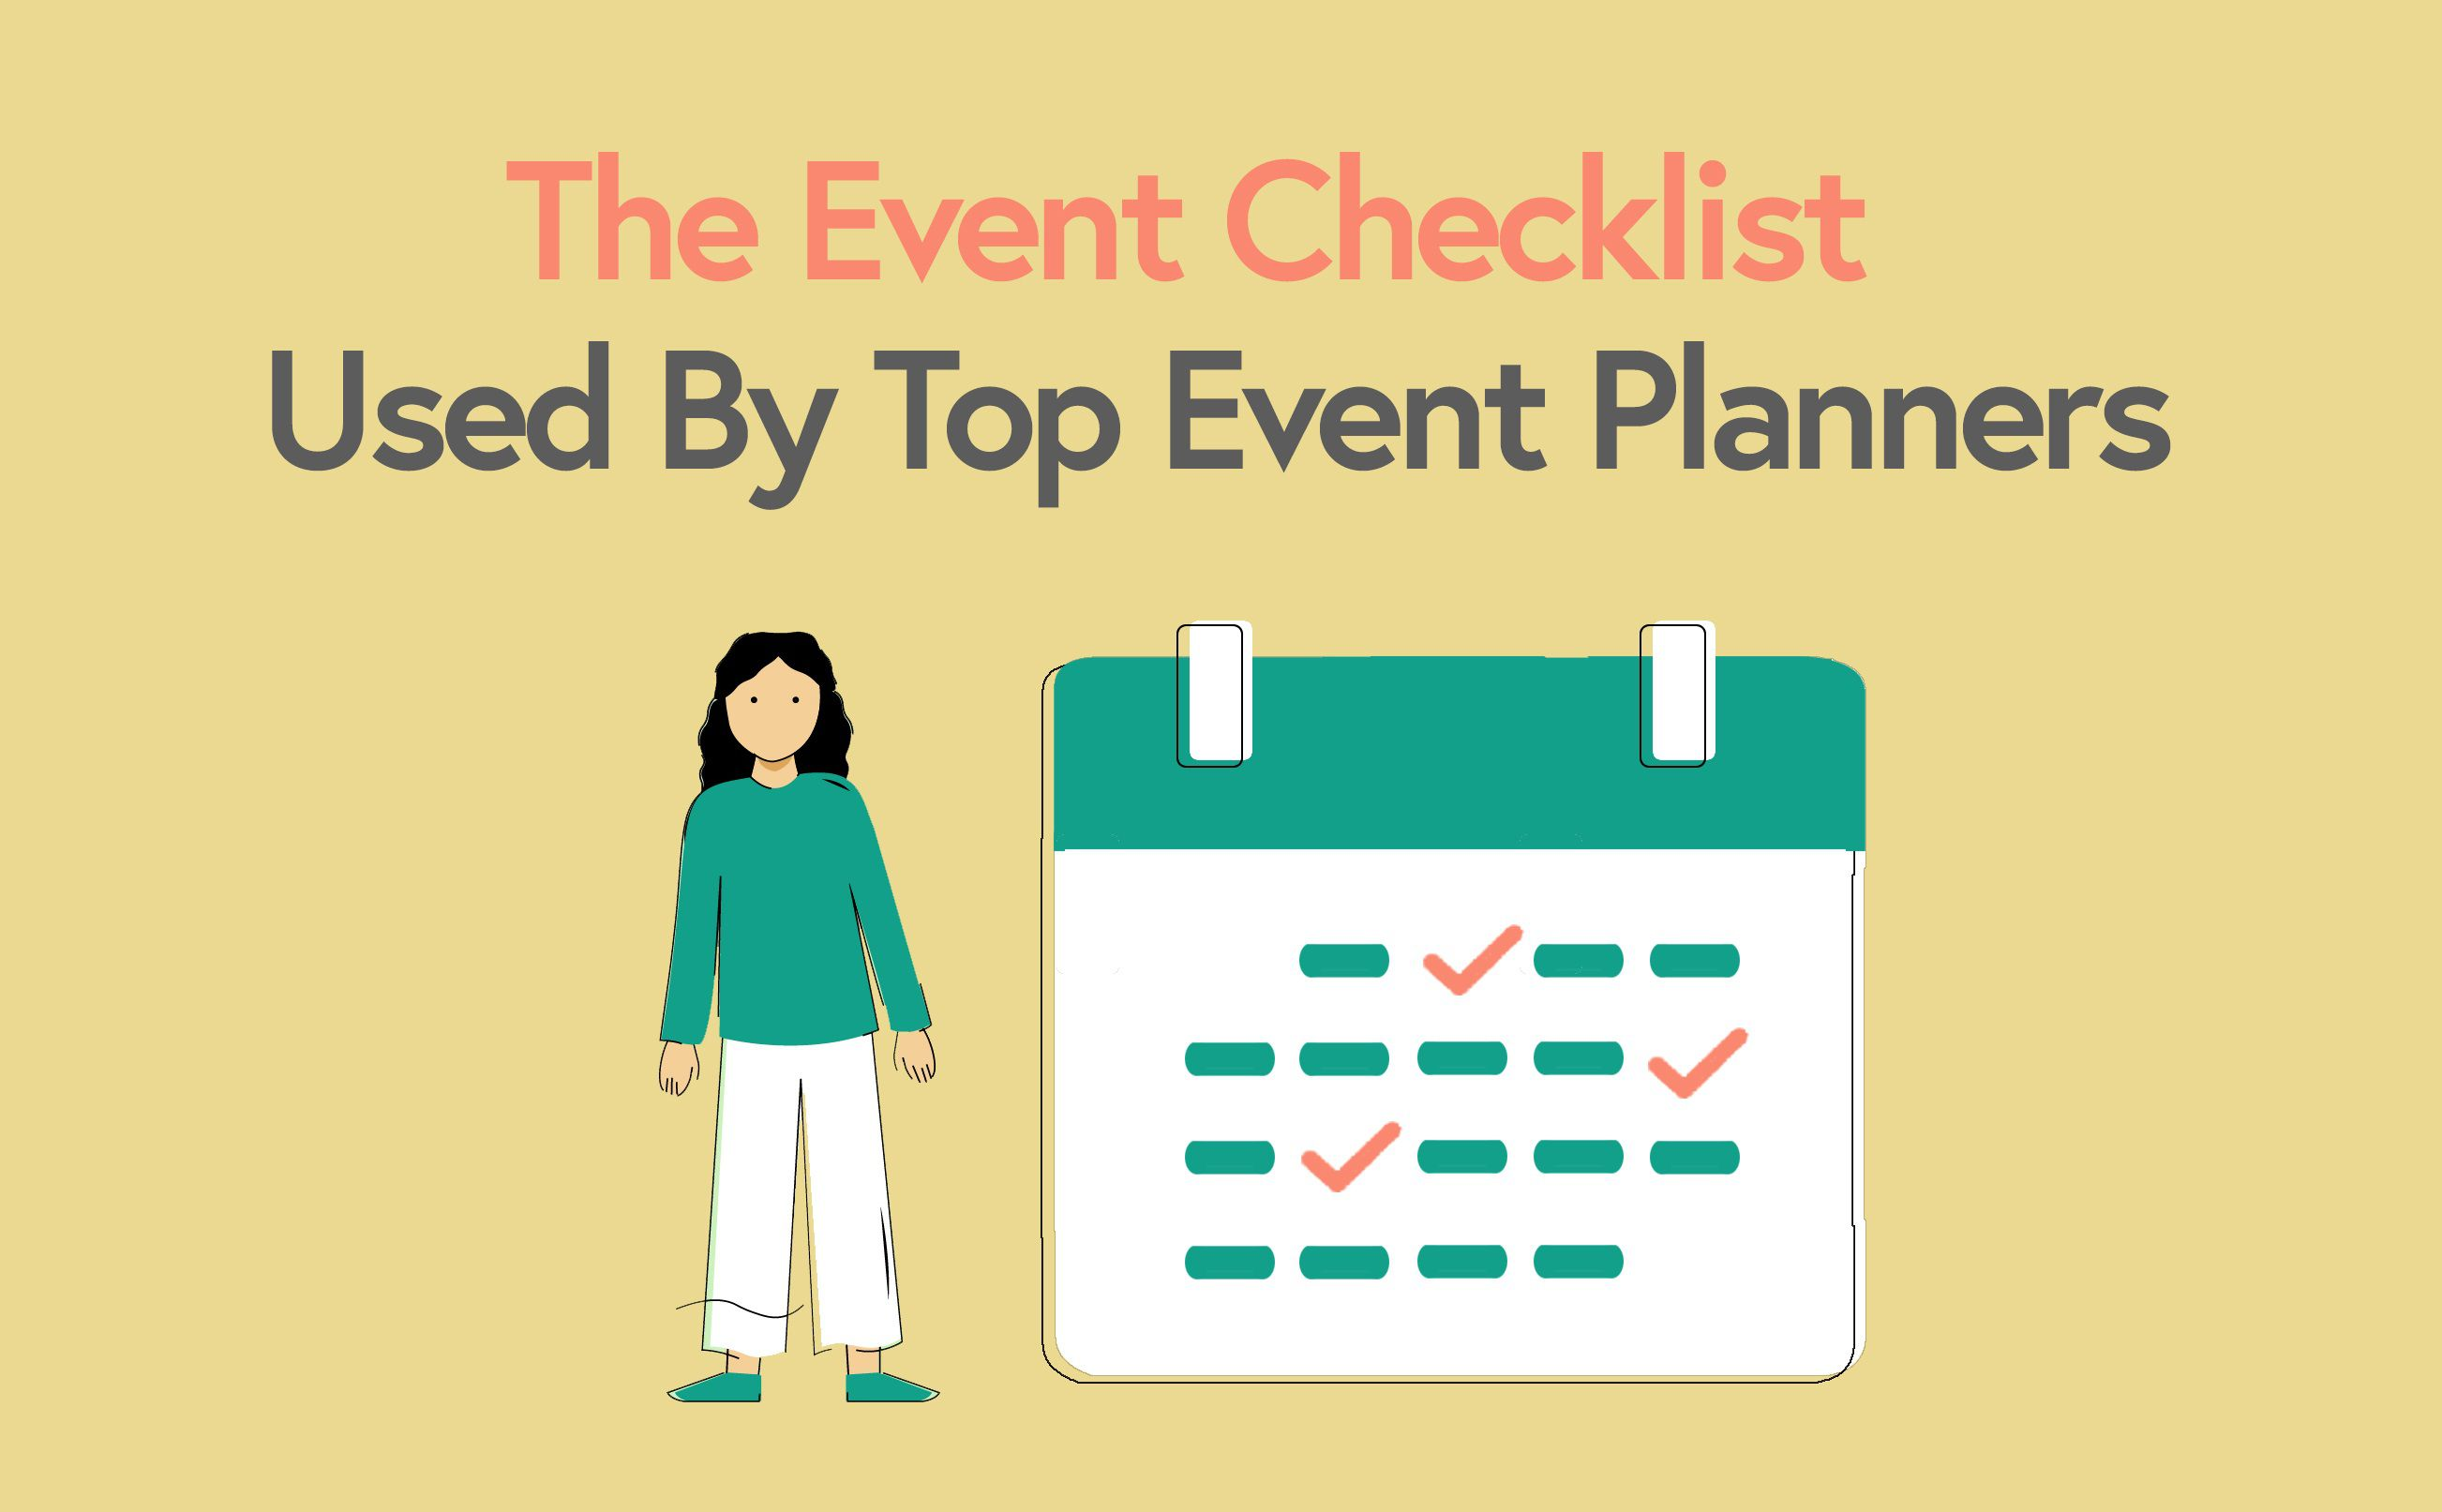 009 Unusual Free Event Planner Template Excel High Def  Checklist Planning For CorporateFull